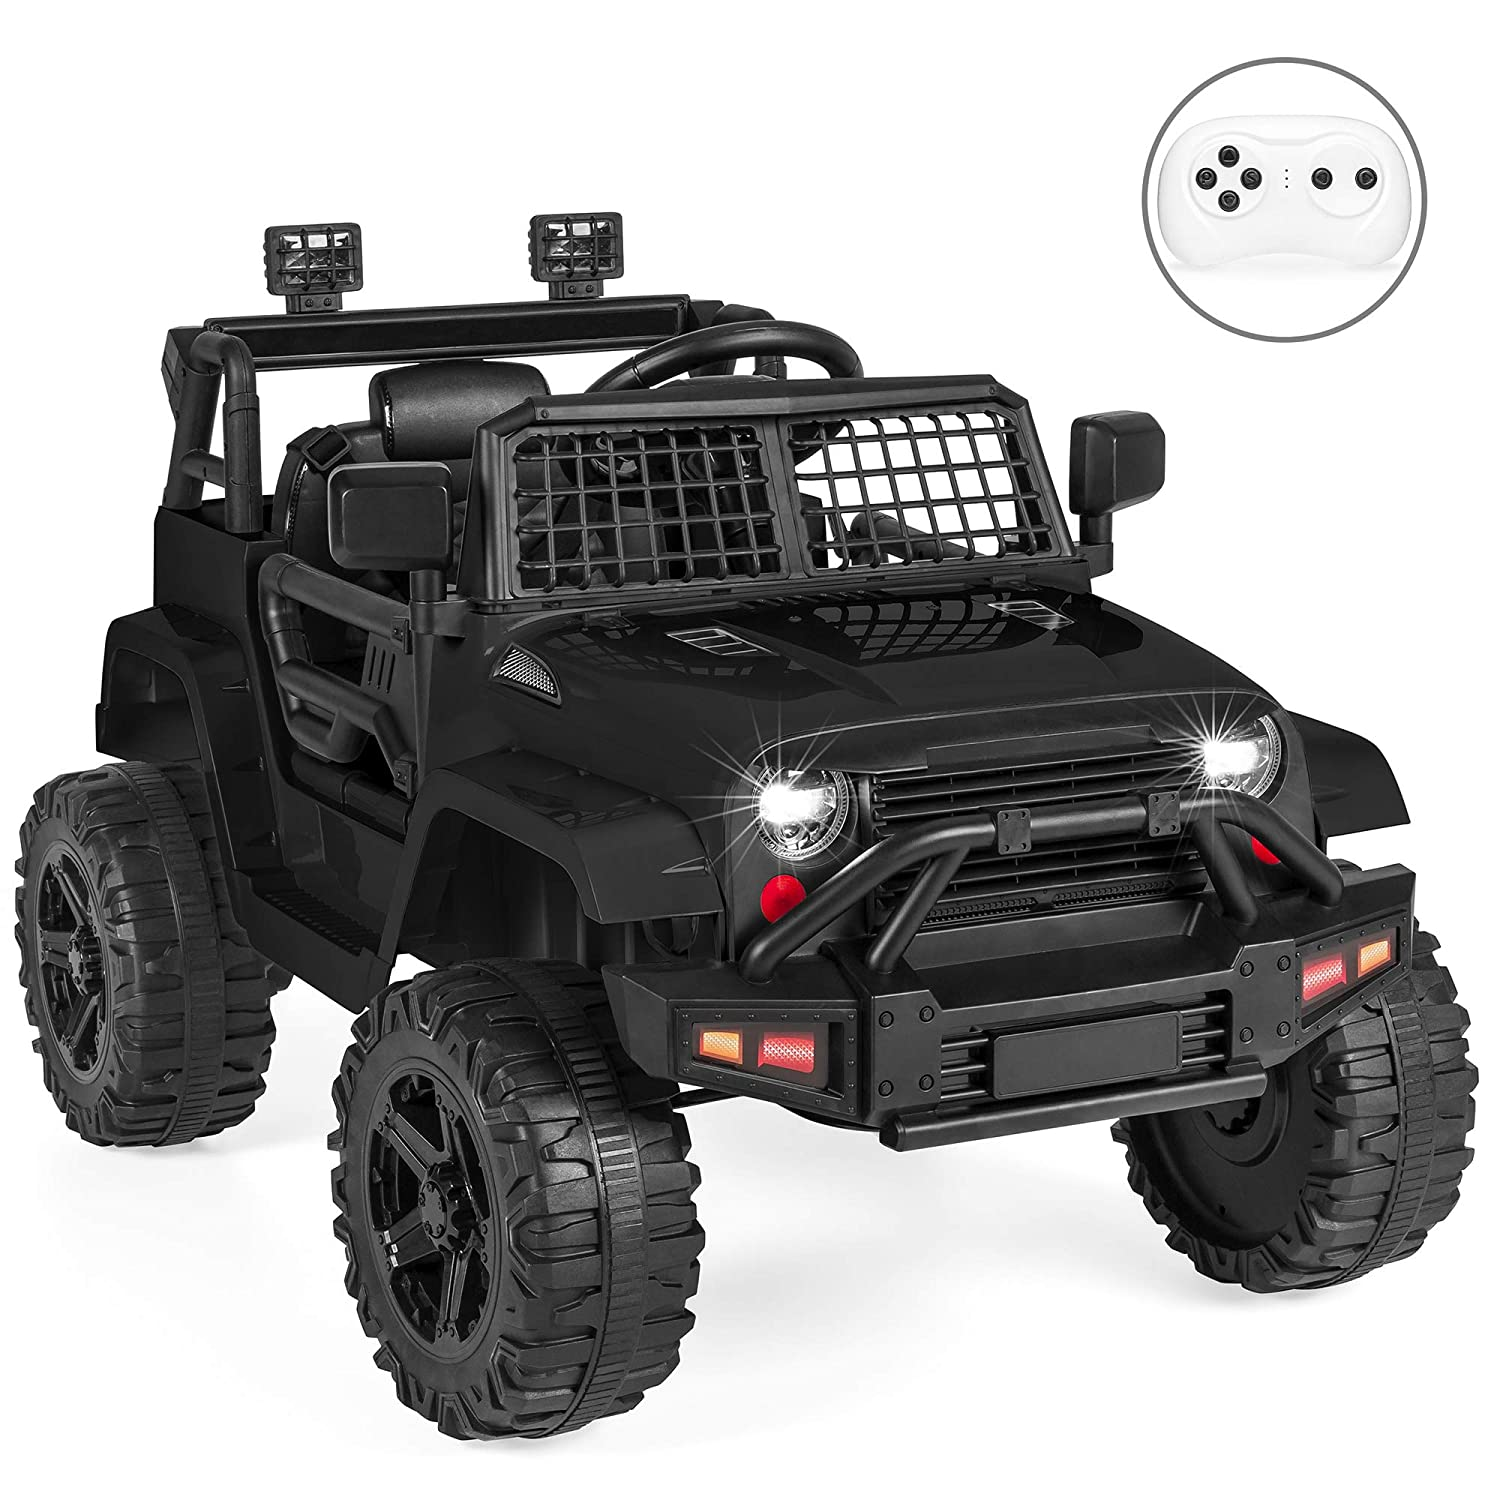 Top 8 Best Power Wheels For 3 Years Old - Buyer's Guide 1